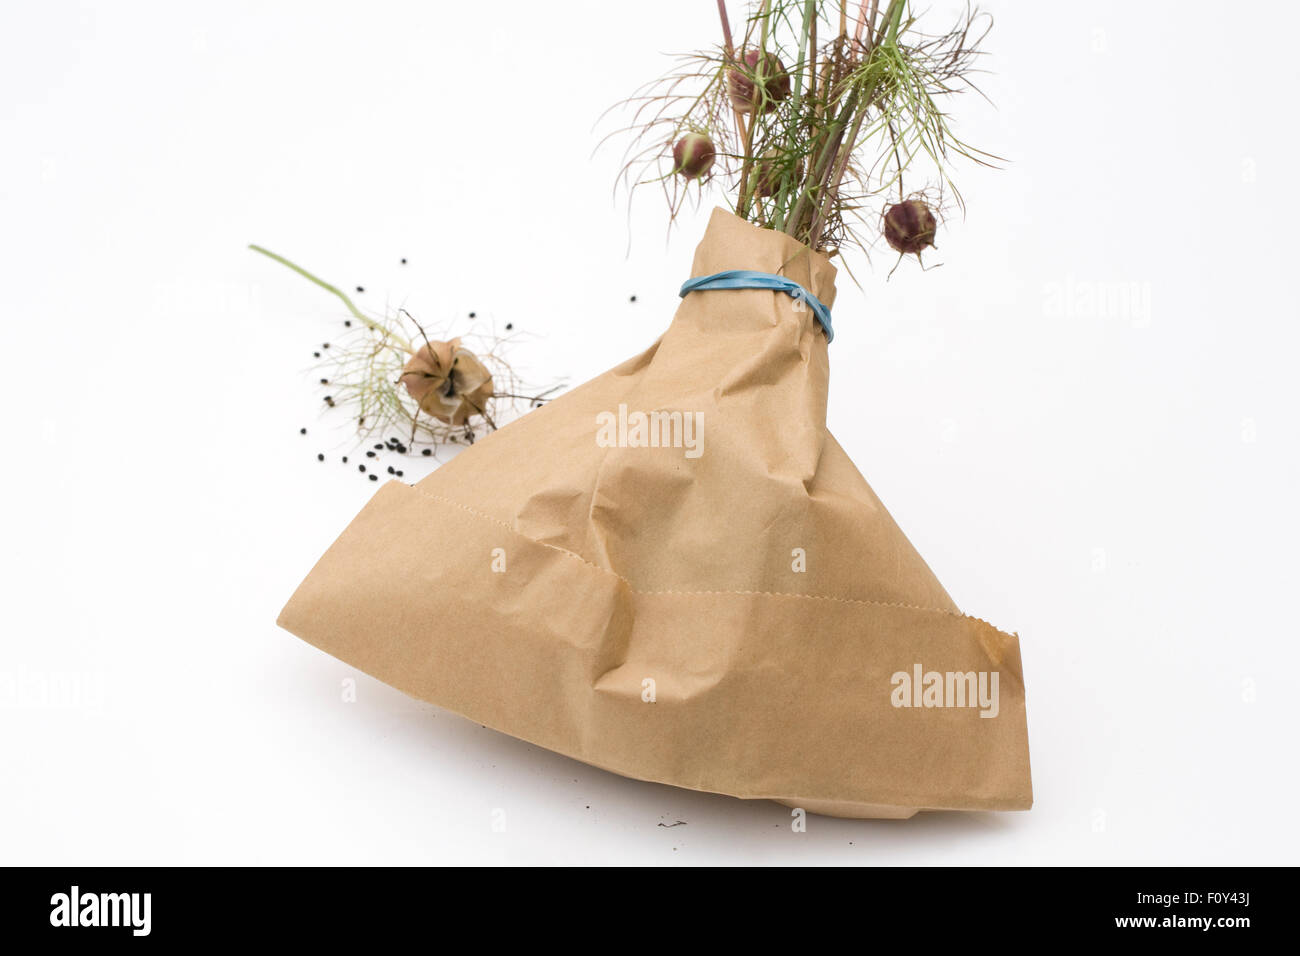 Nigella damascena 'Persian Jewels' seedhead. Collecting Love-in-the-mist seedpods in a paper bag. - Stock Image